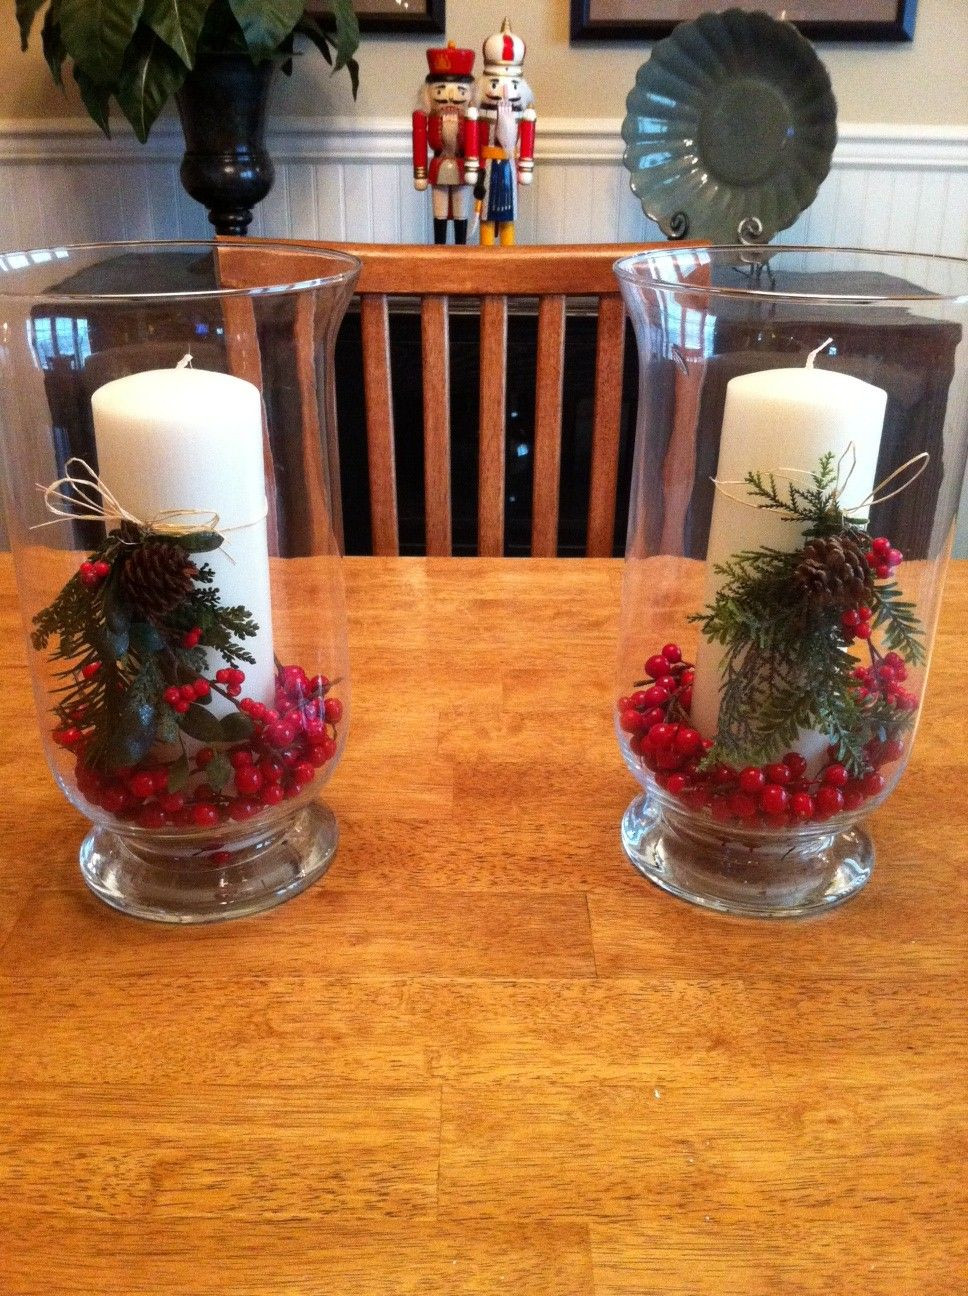 hobby lobby vase filler of wanted something festive for christmas so i used the hurricane pertaining to the hurricane candle holders from homegoods and tied artificial evergreens and berries with raffia to the candles i couldnt find cranberry filler so